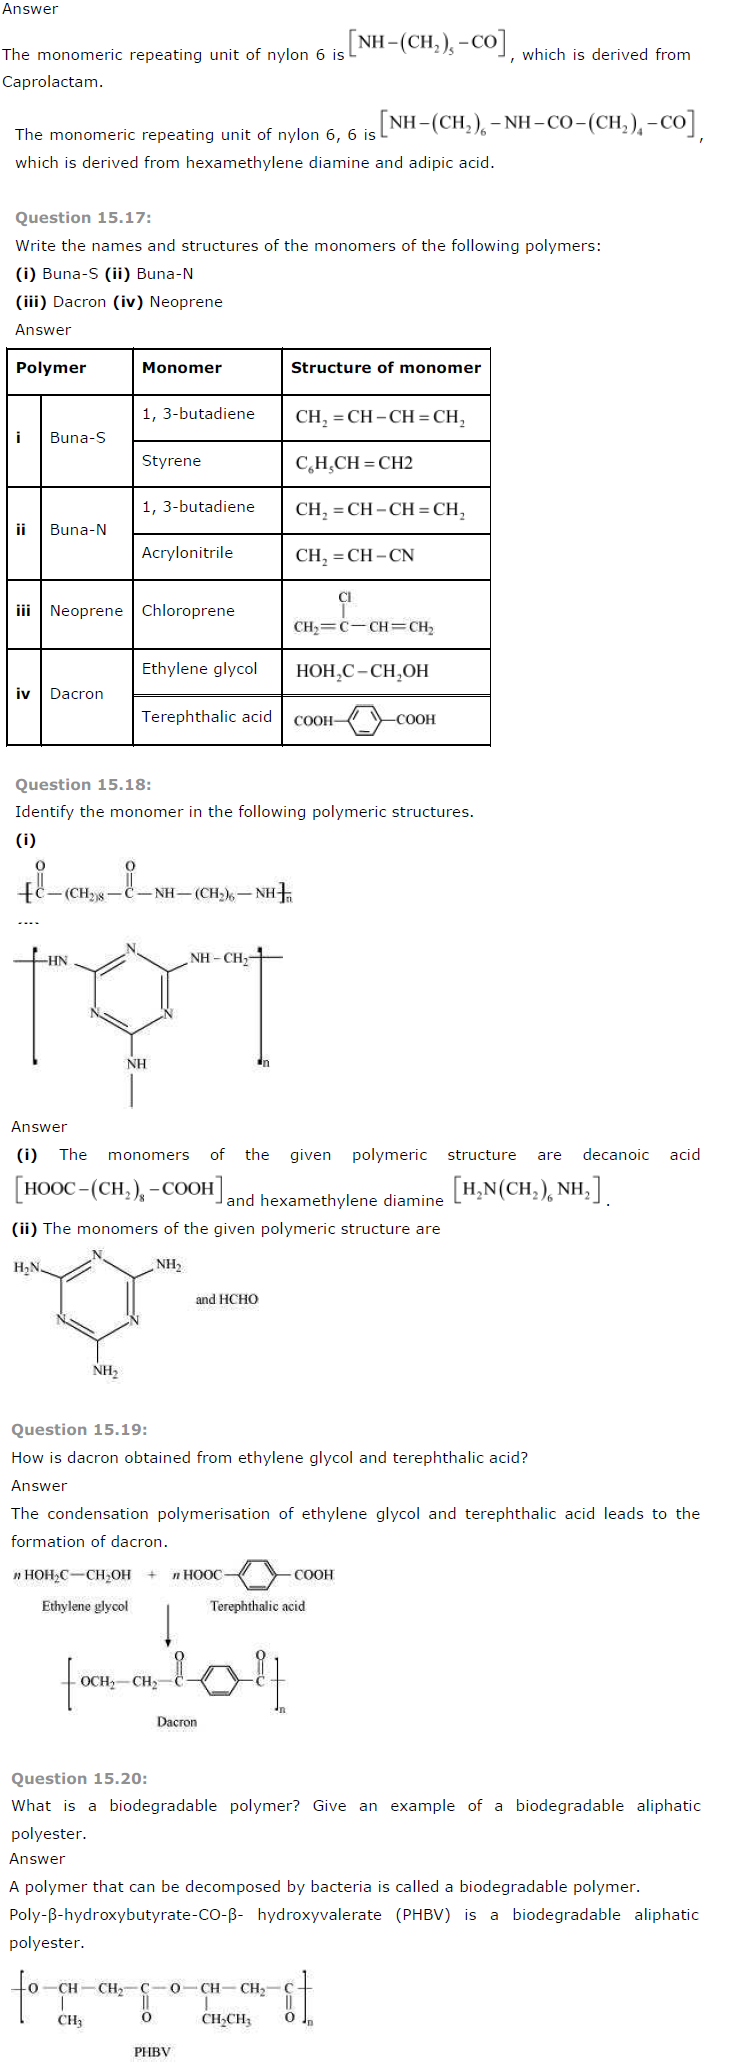 NCERT Solutions Class 12 Chemistry Chapter 15 Polymers NCERT Solutions Class 12 Chemistry Chapter 15 Polymers NCERT Solutions Class 12 Chemistry Chapter 15 Polymers NCERT Solutions Class 12 Chemistry Chapter 15 Polymers